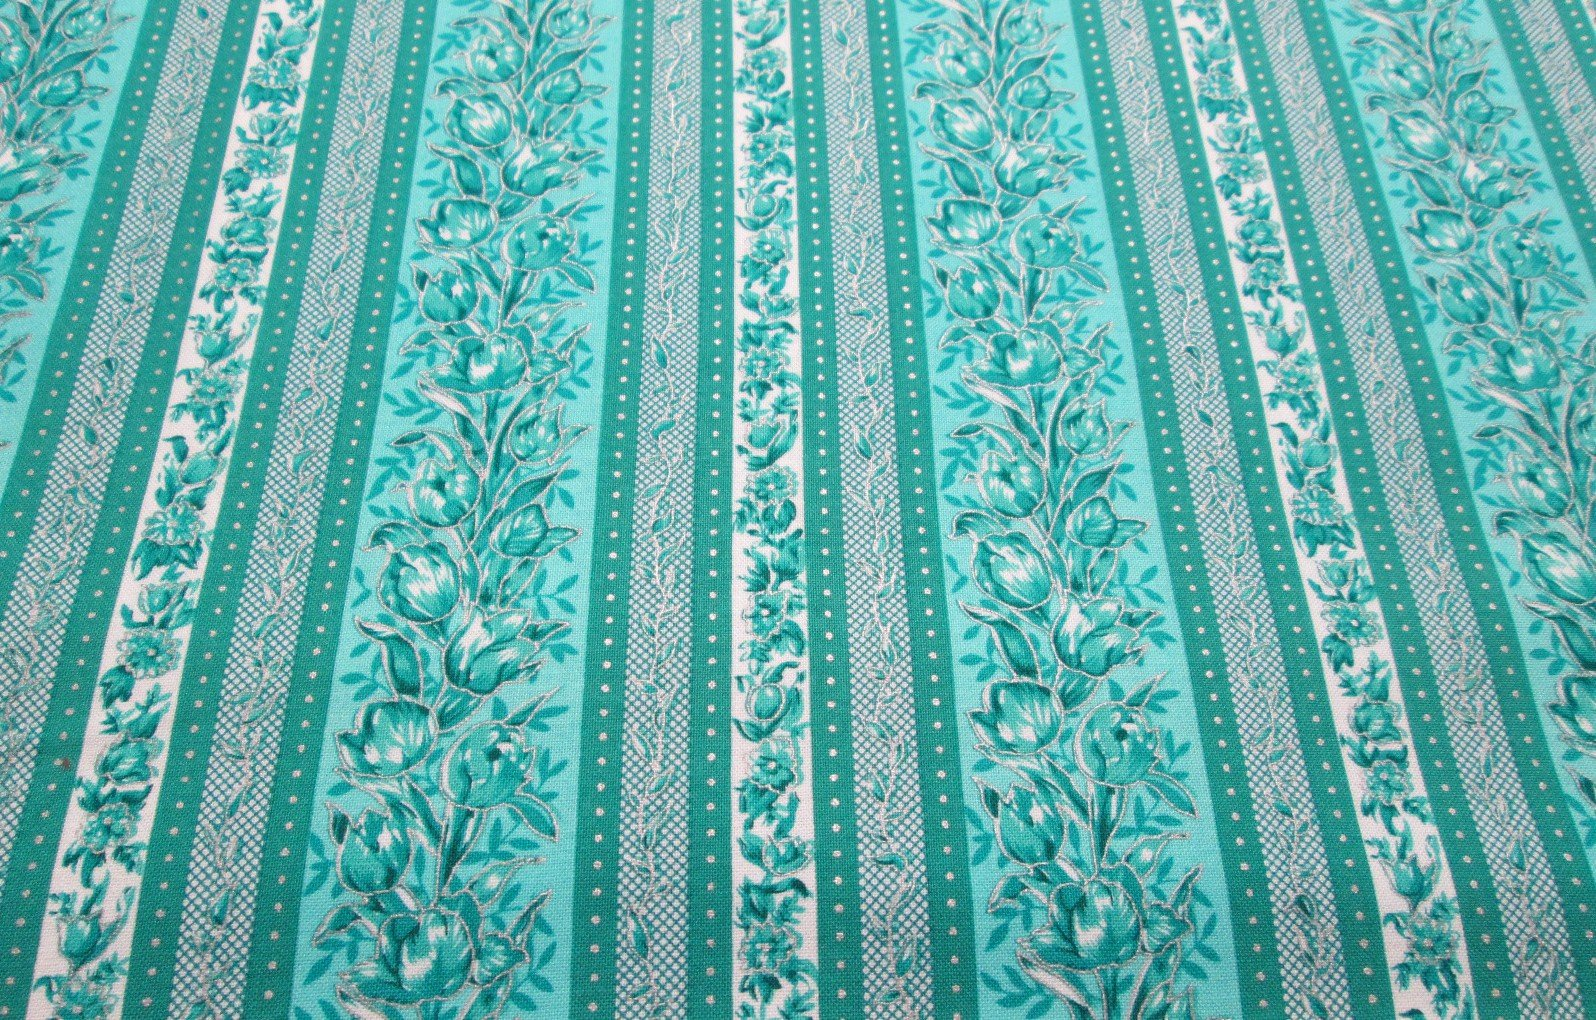 Blank quilting fabric btr 3912 for Cotton quilting fabric